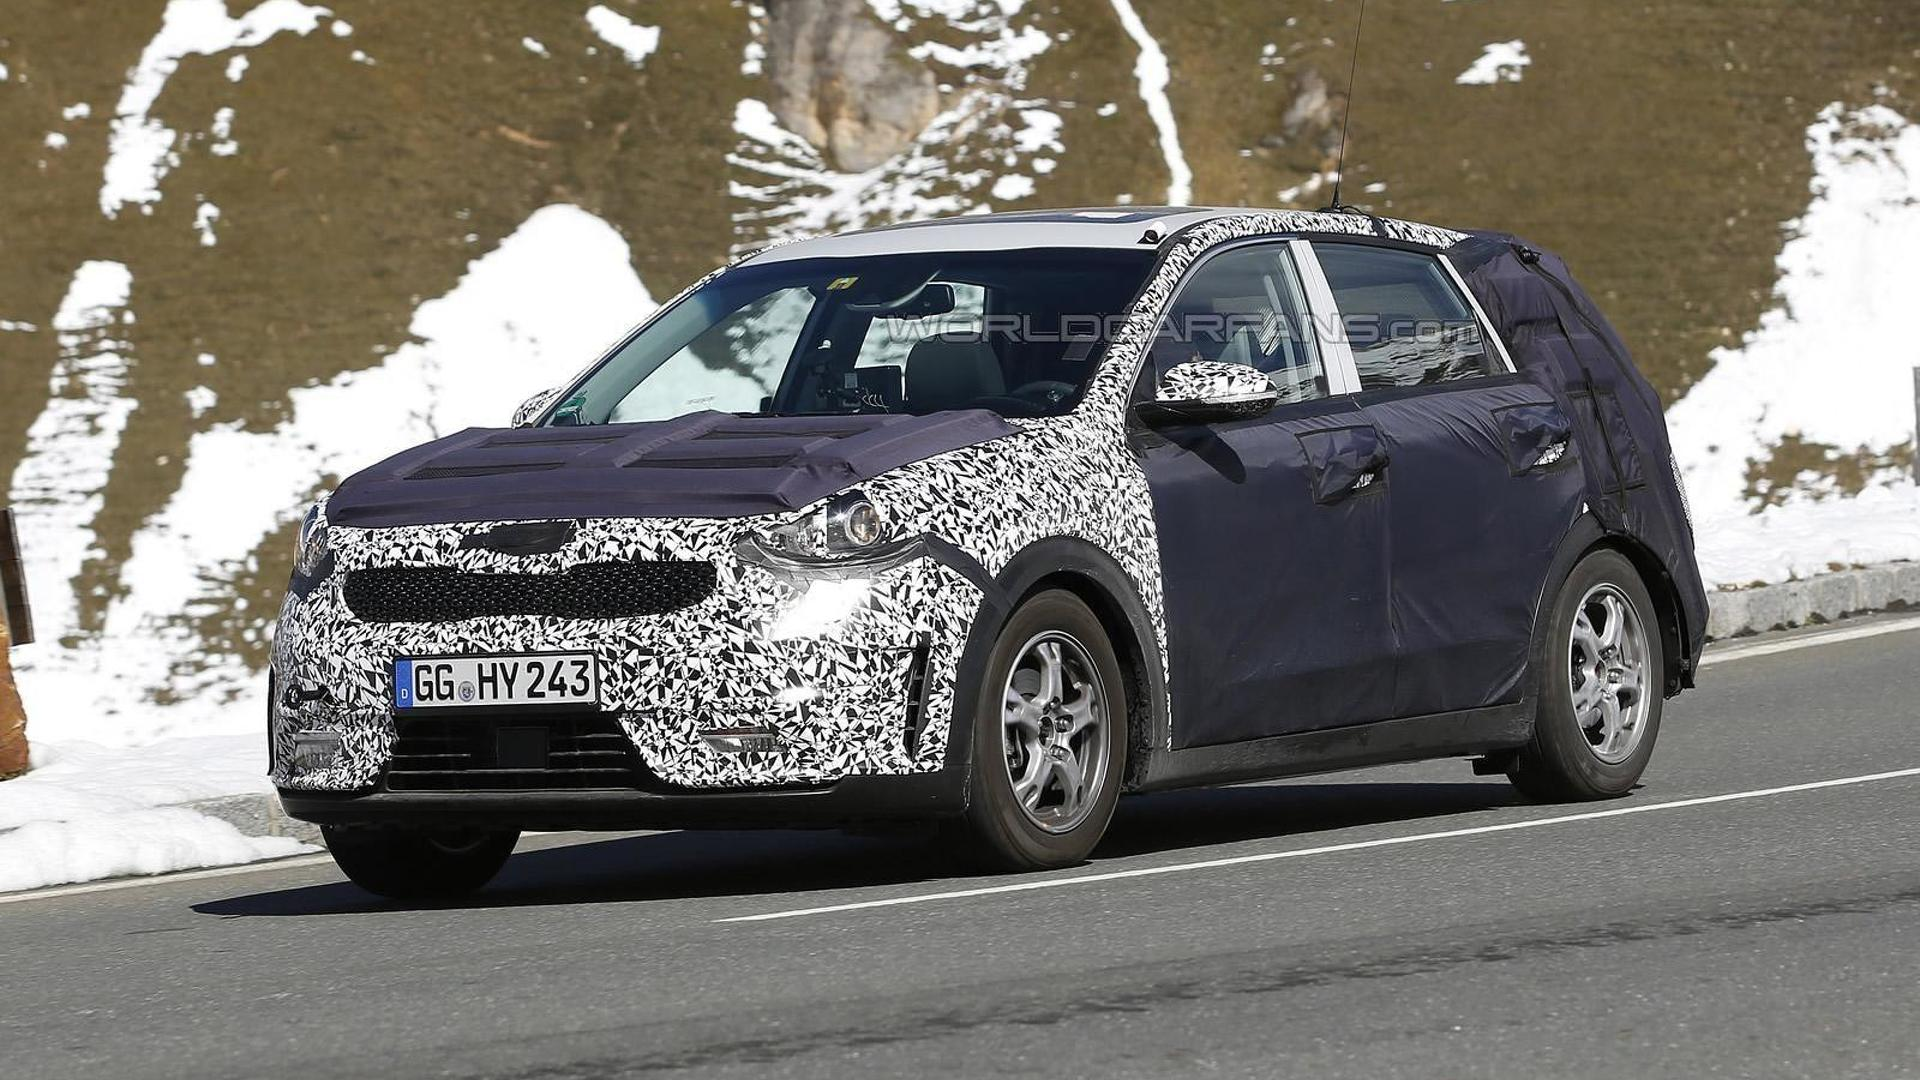 Kia Niro hybrid crossover spied in motion, will be out next year [video]